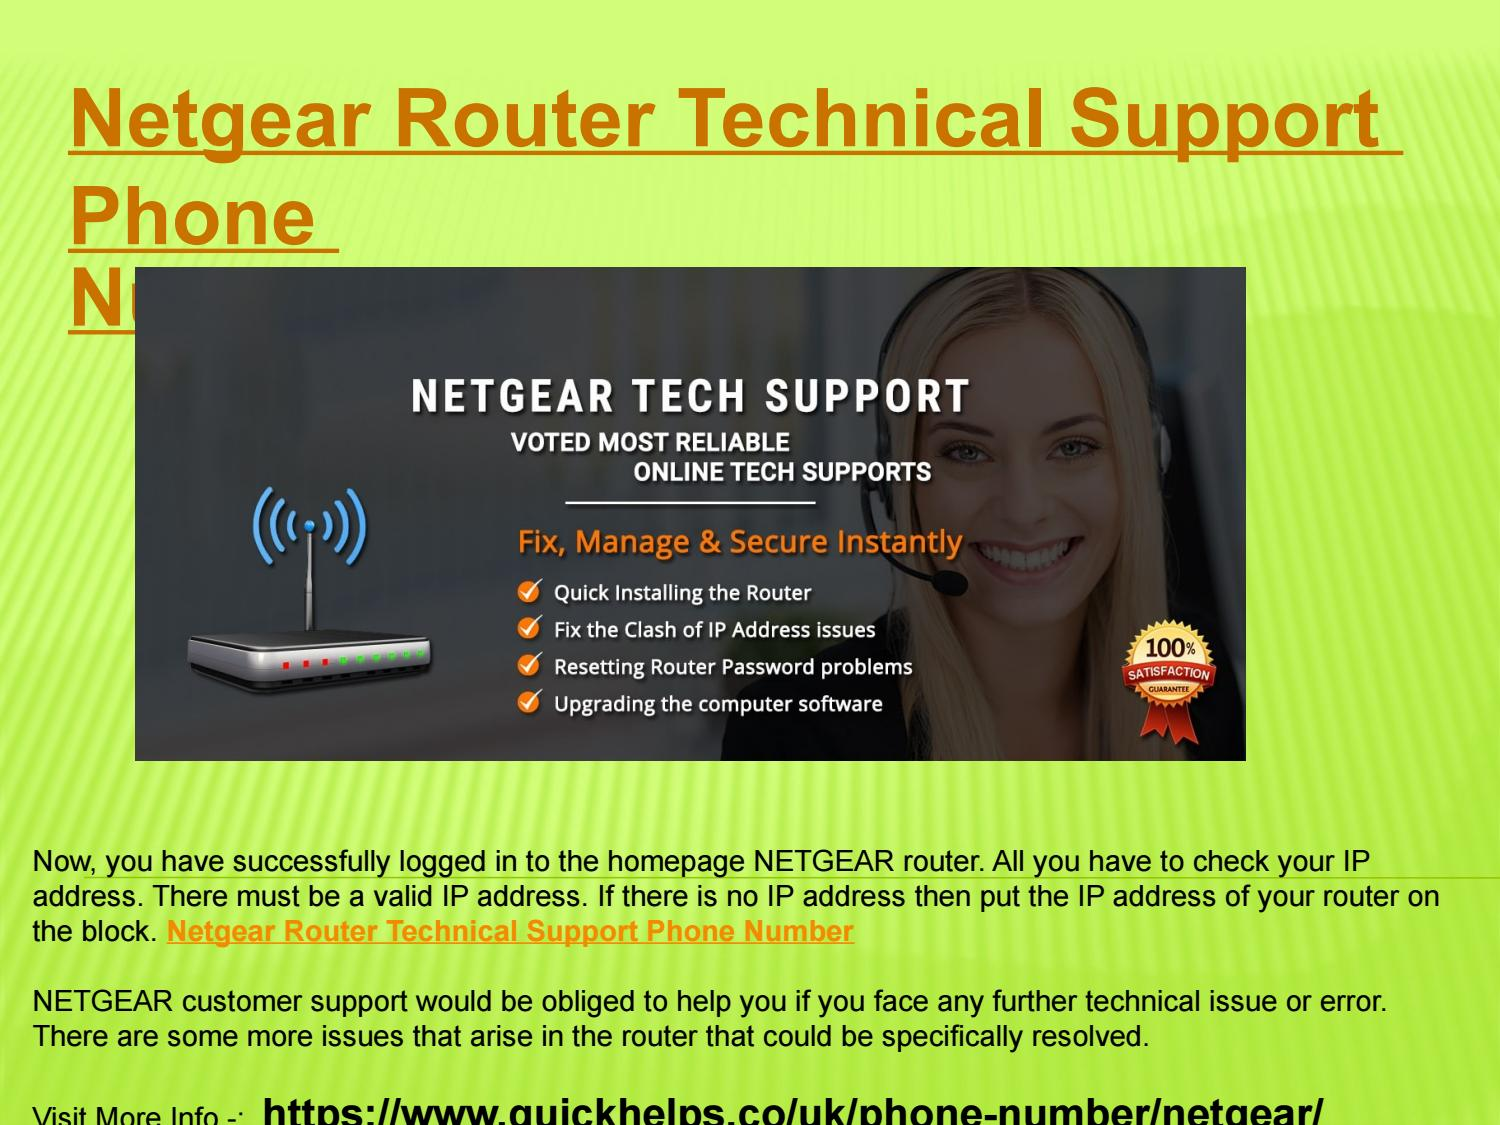 +44 020 3880 8075 Netgear Router Technical Support Phone Number